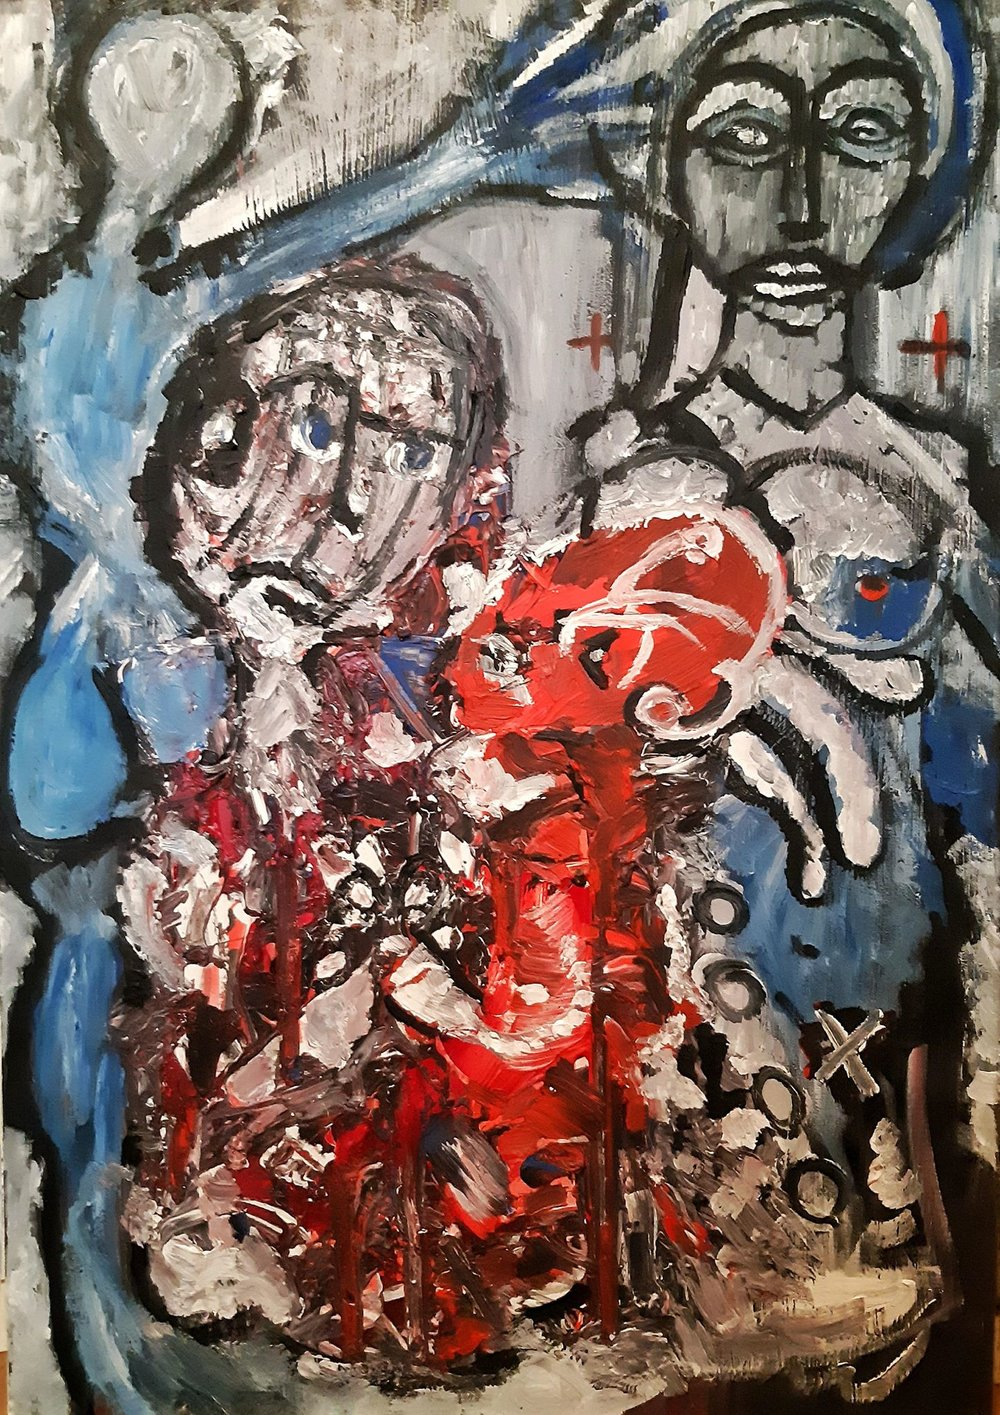 The Devil his Father and the Nuns, 81 x 116 cm, acrylic on canvas, Paris 2016